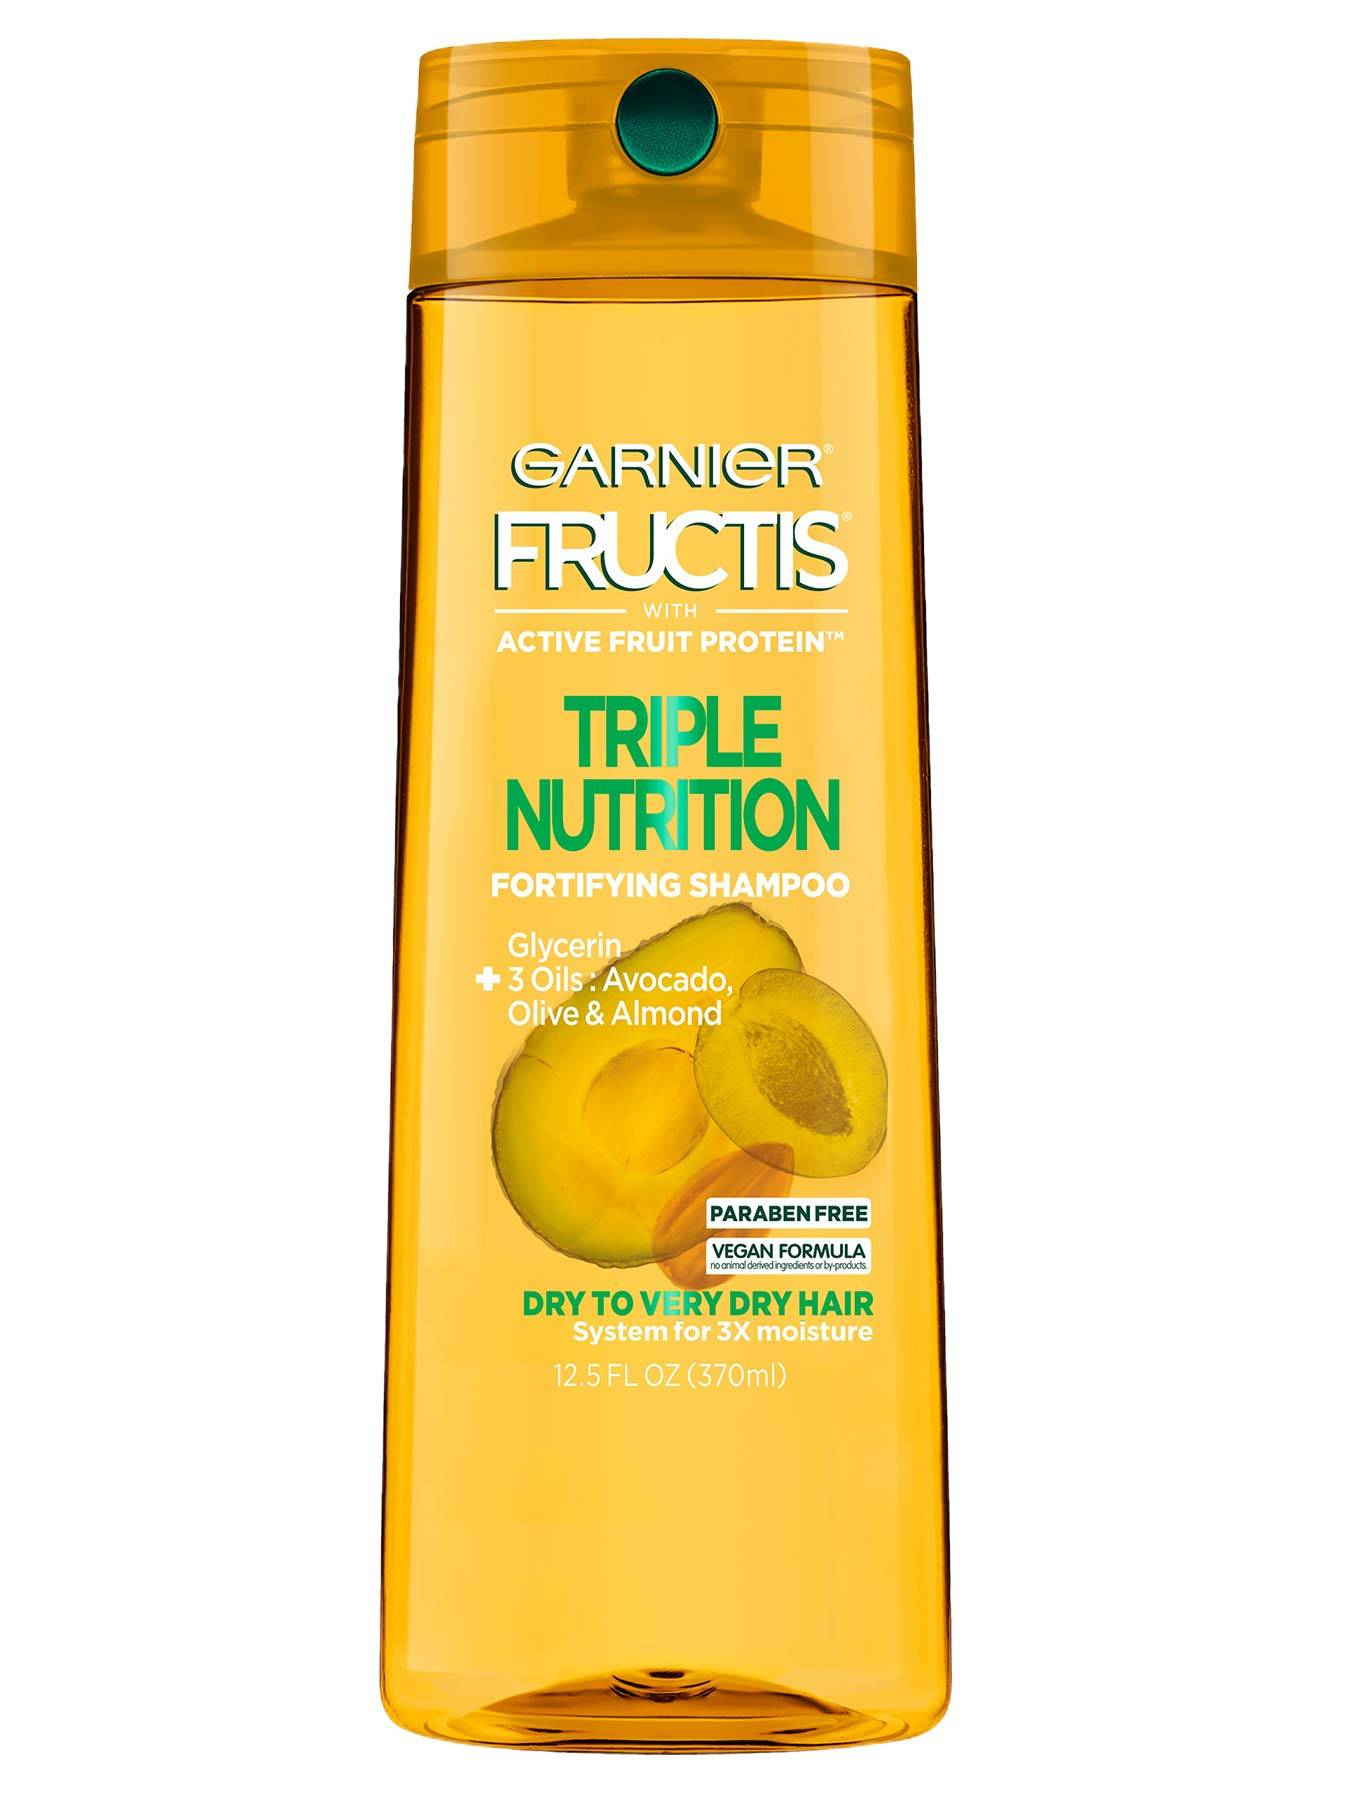 Fructis - Hair Care Products For Healthier Hair - Garnier